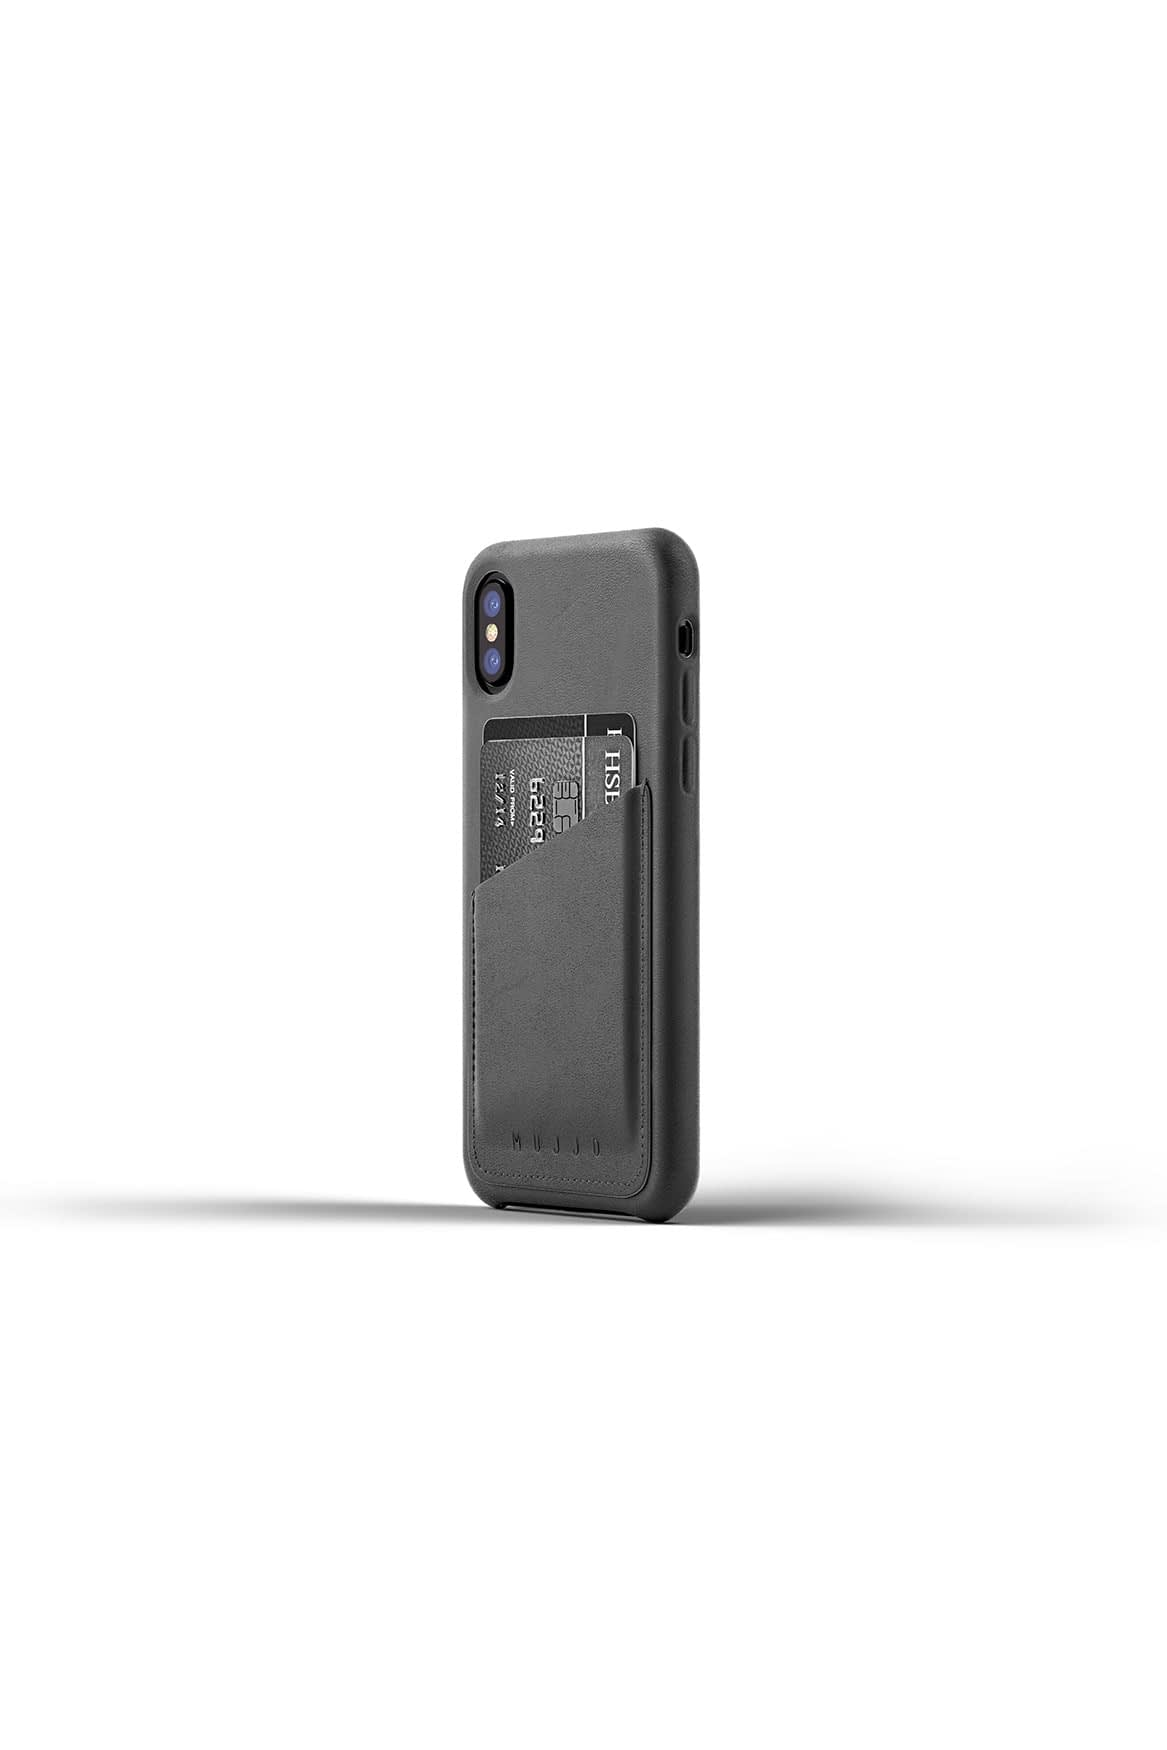 Full leather wallet case for iPhone X Gray Packshot 01